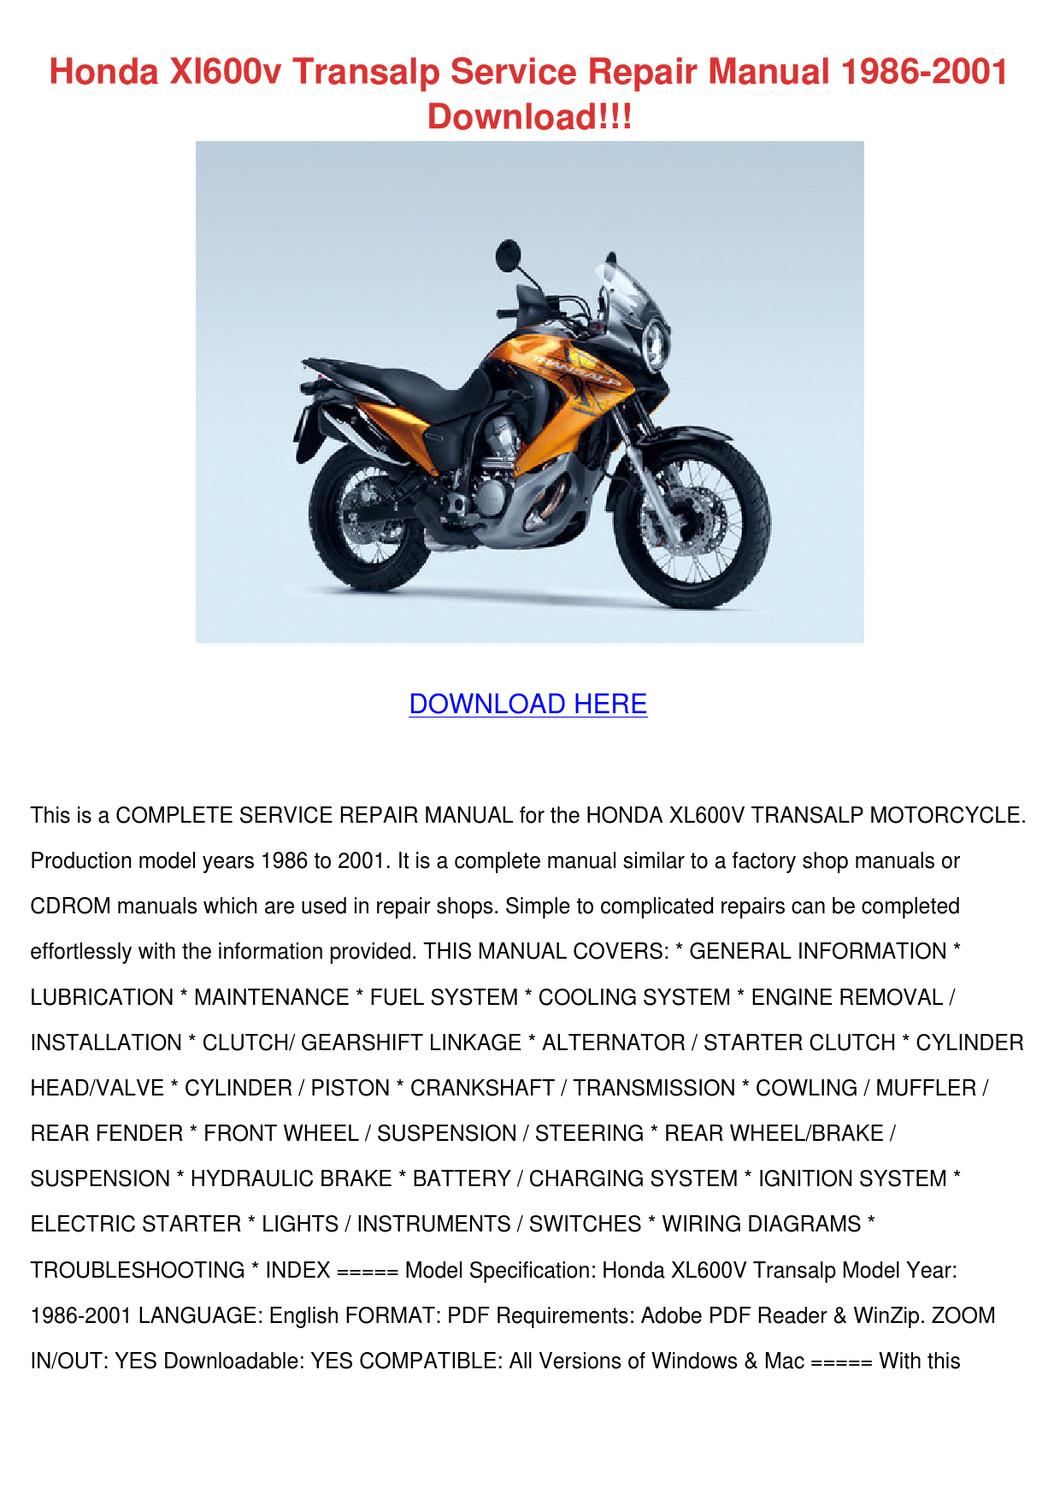 Honda Xl600v Transalp Service Repair Manual 1 By Shameka Dice Issuu